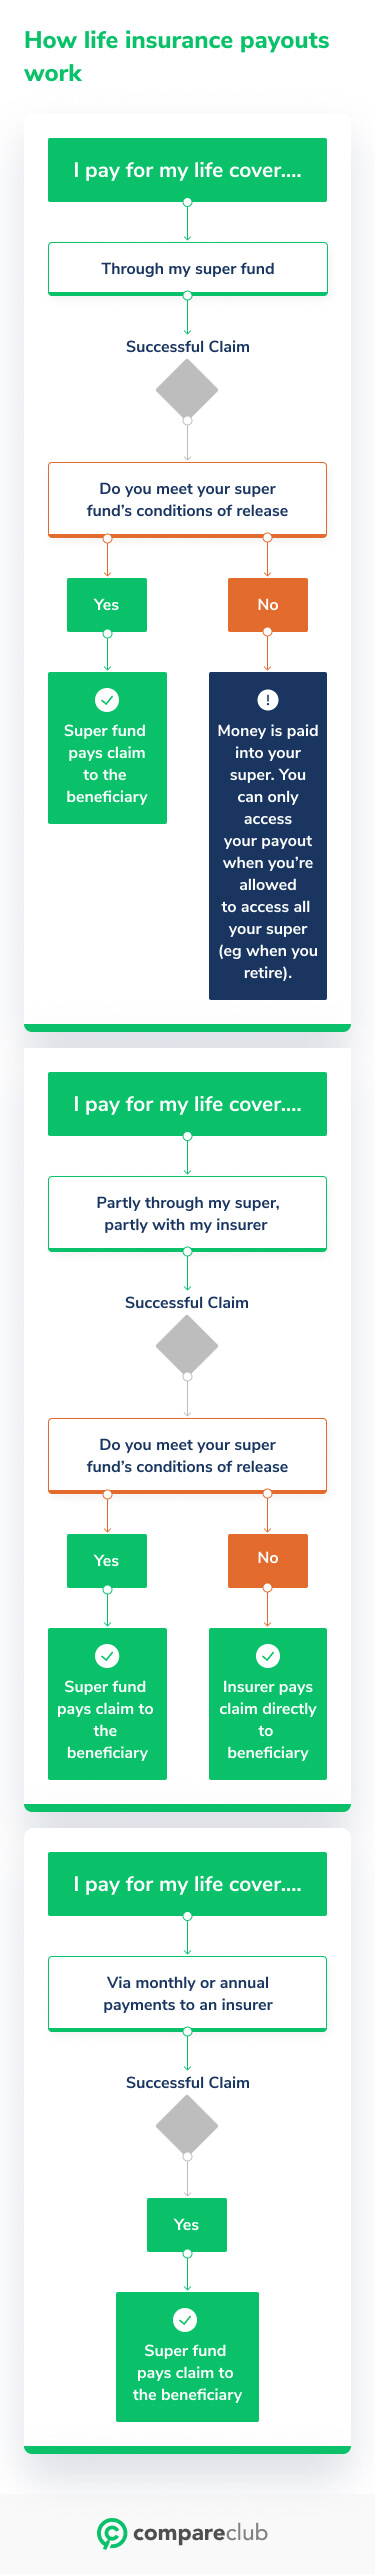 How life insurance payouts work?